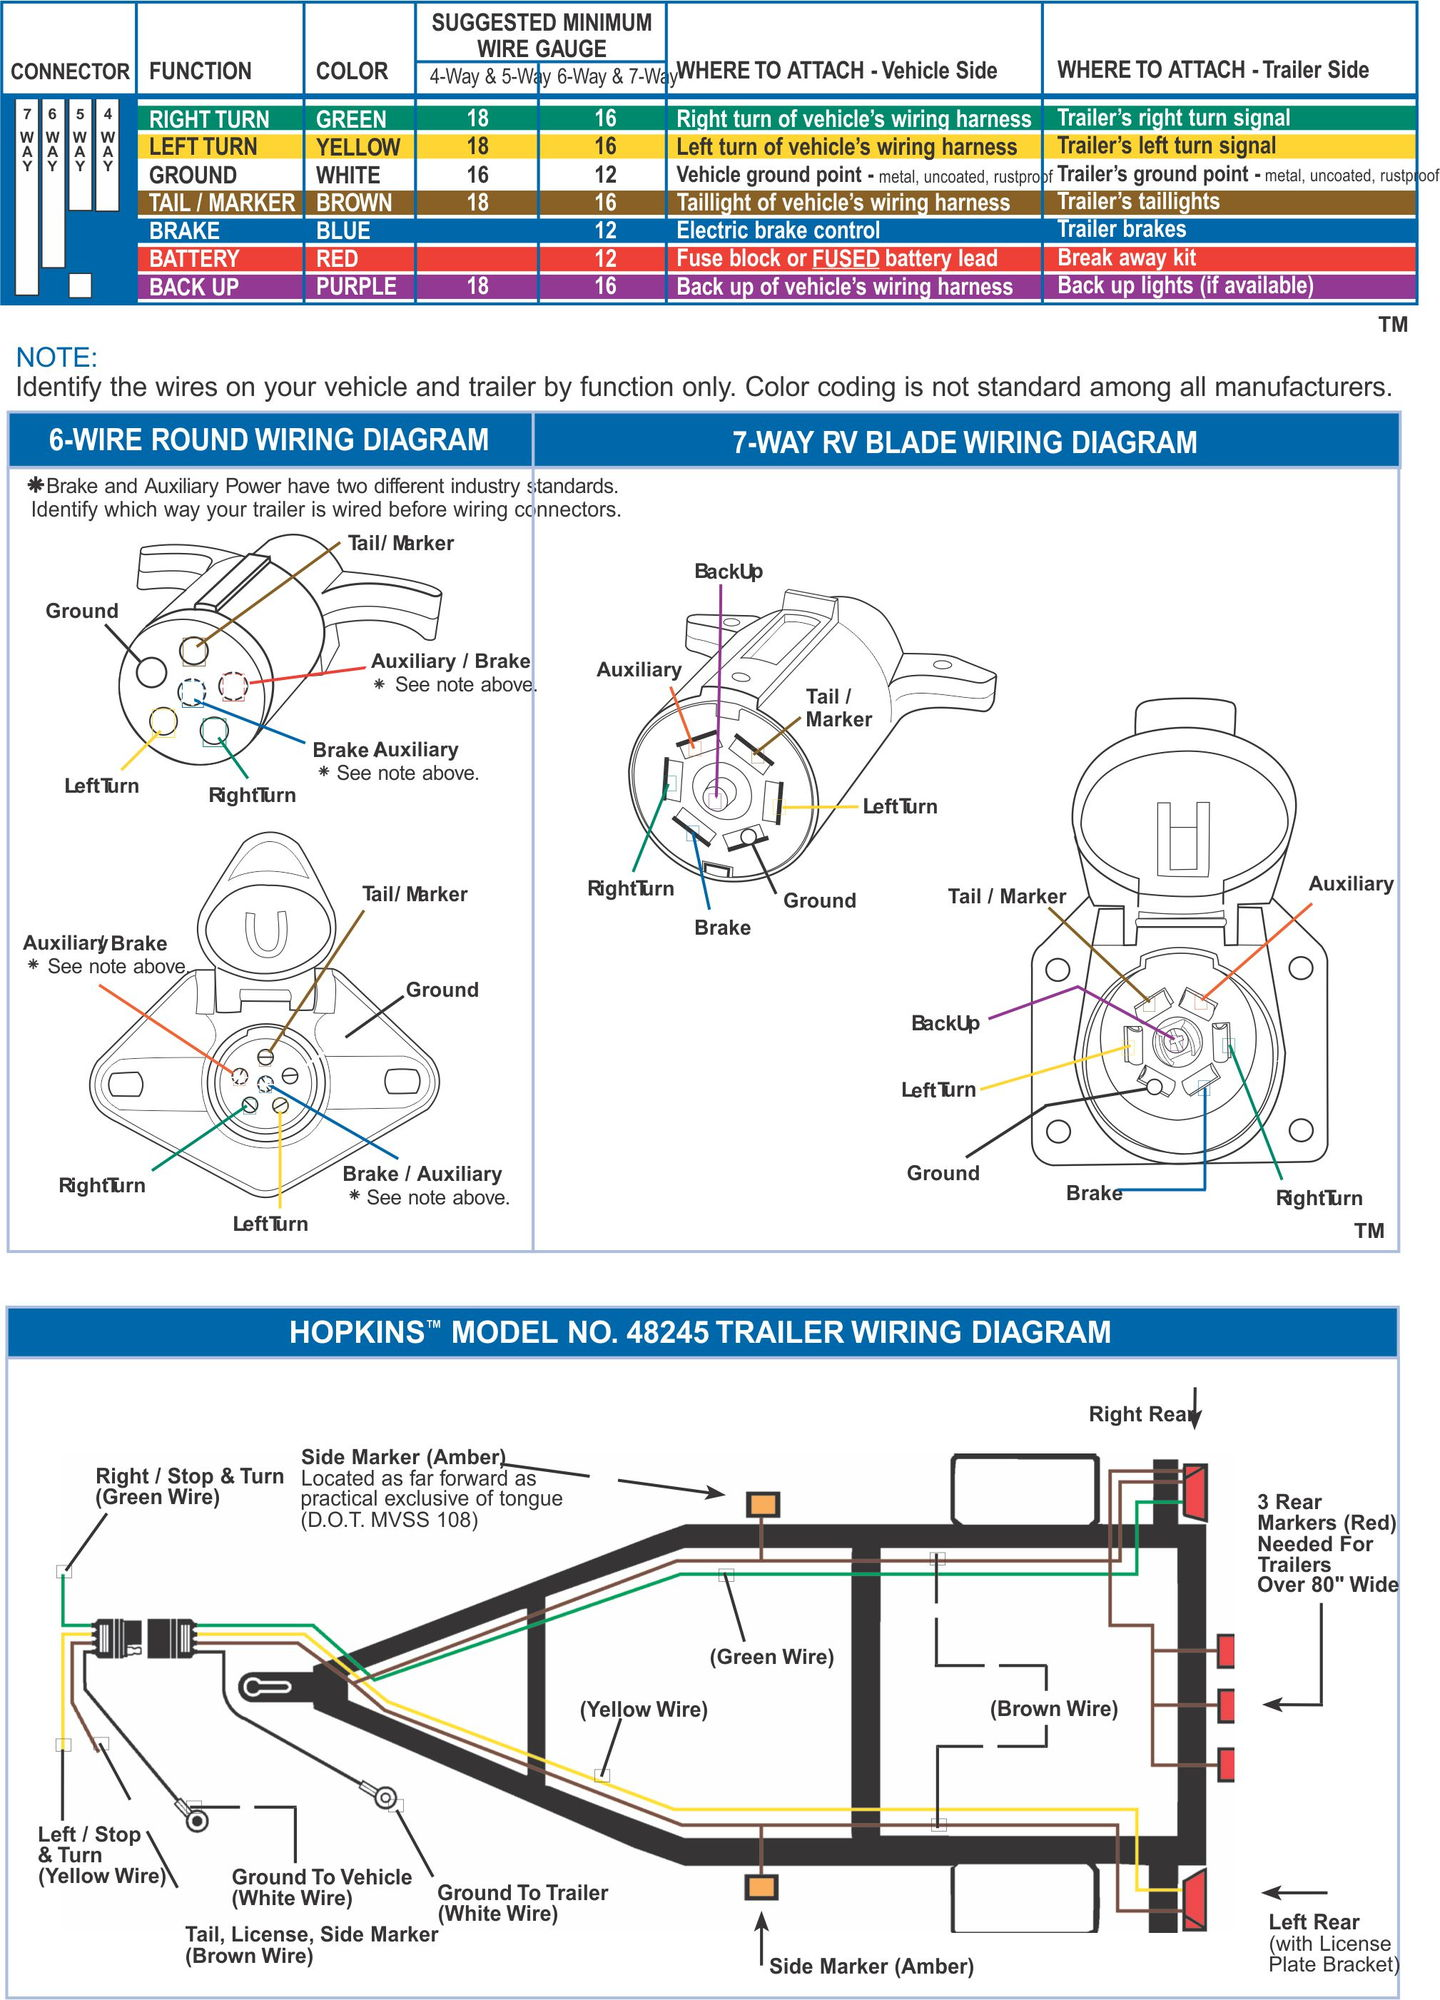 Tail Light Wiring Diagram 1964 Dolphin Gauges Speedometer Diagram – Isuzu Npr Turn Signal Wiring Diagram